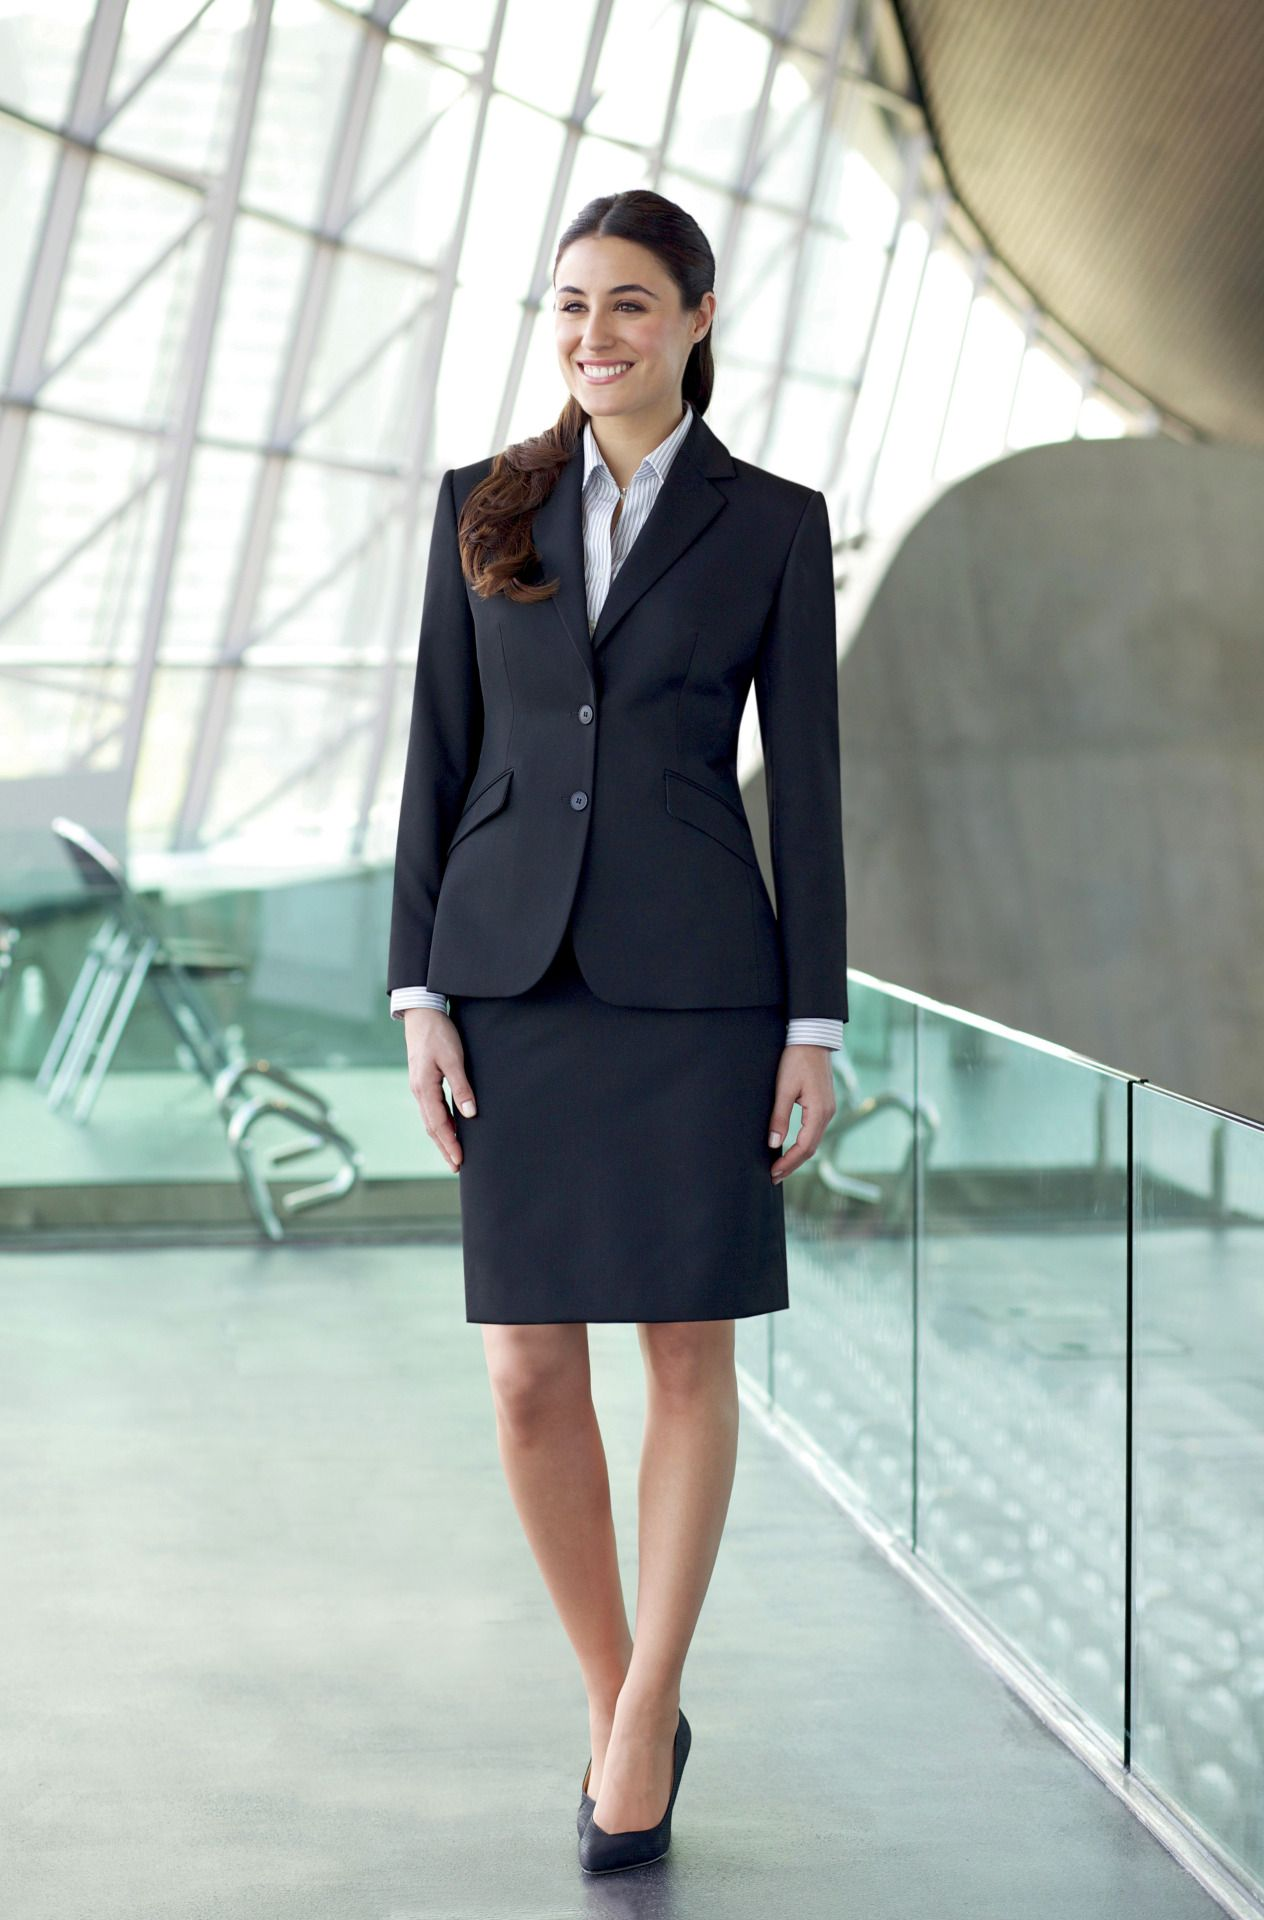 The Beauty And Classic Elegance Of Women S Fashion Conservative